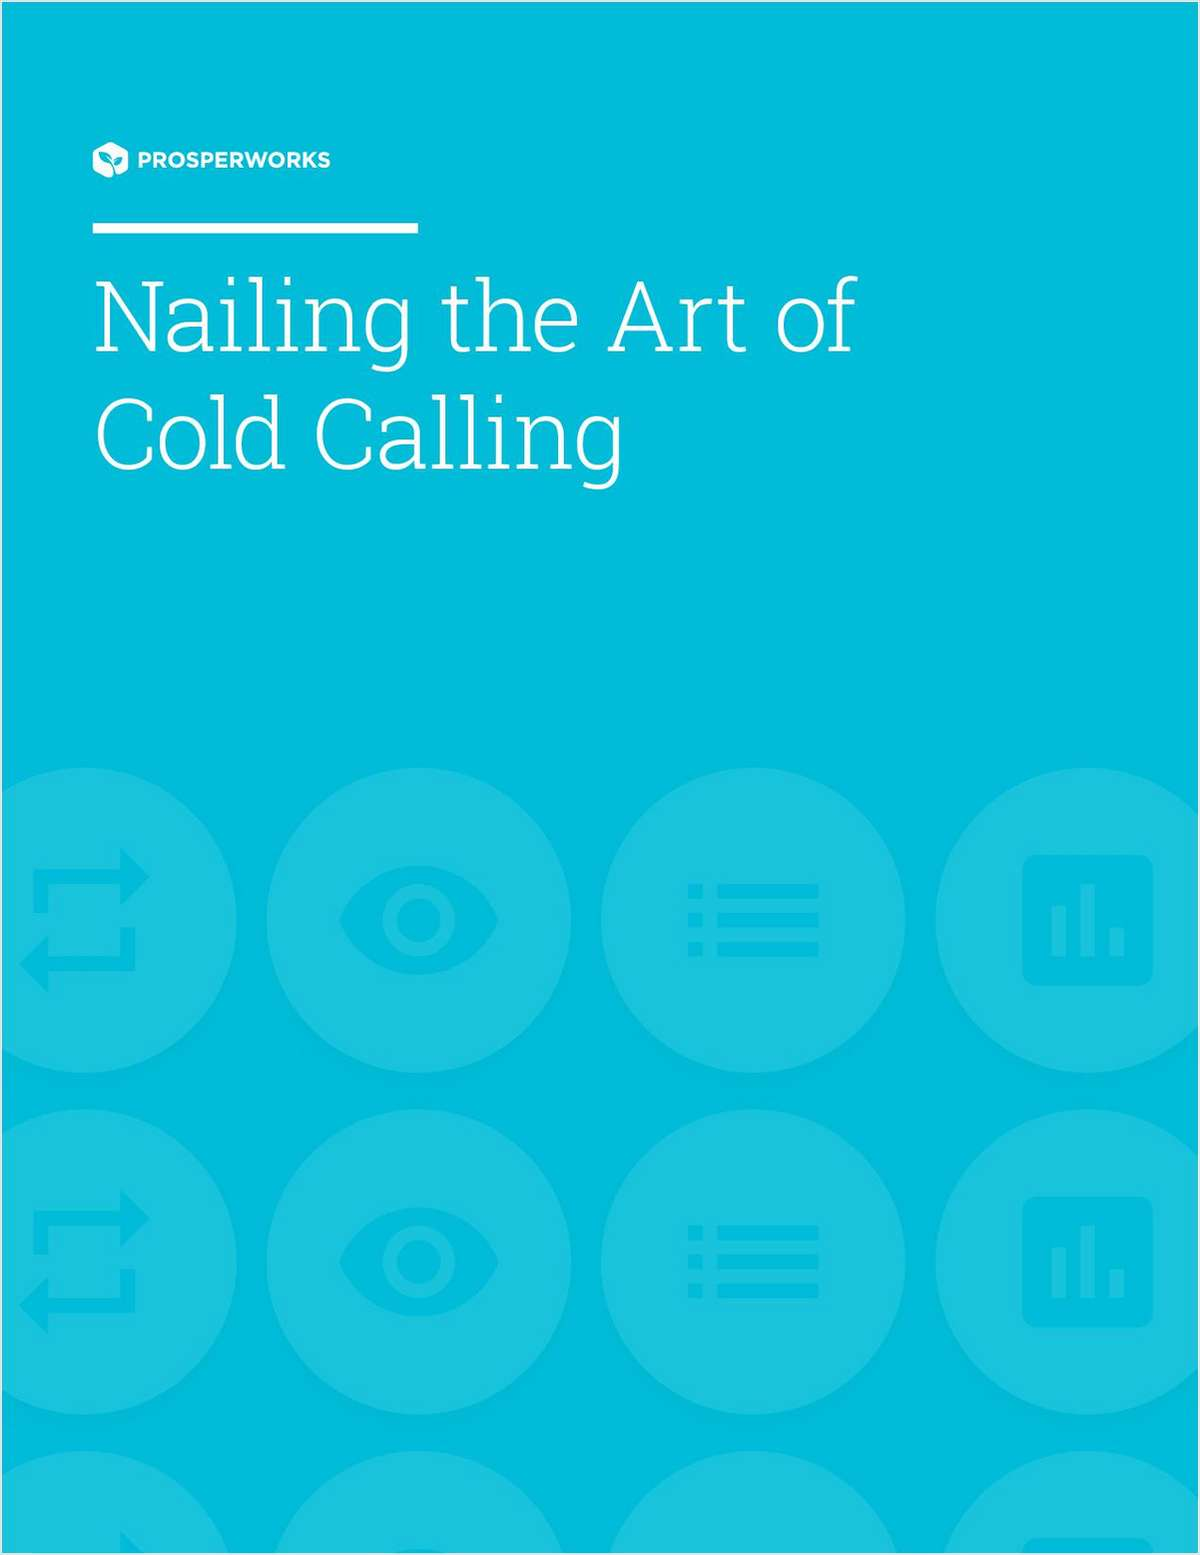 Nailing the Art of Cold Calling